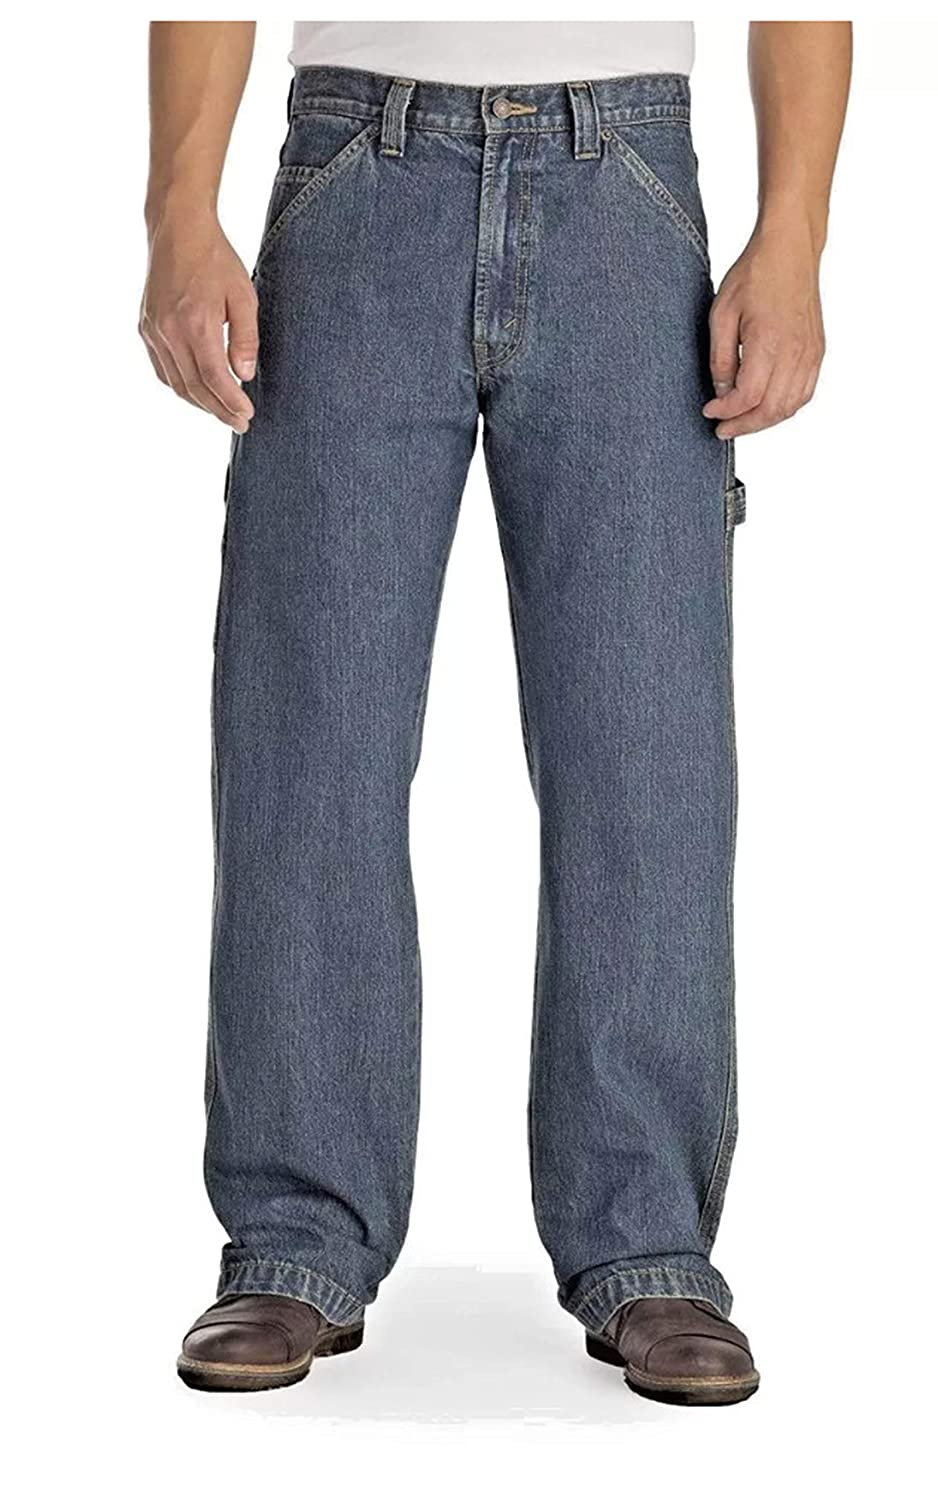 Levi Straus Signature Mens Carpenter Jeans Style 084060010 ...